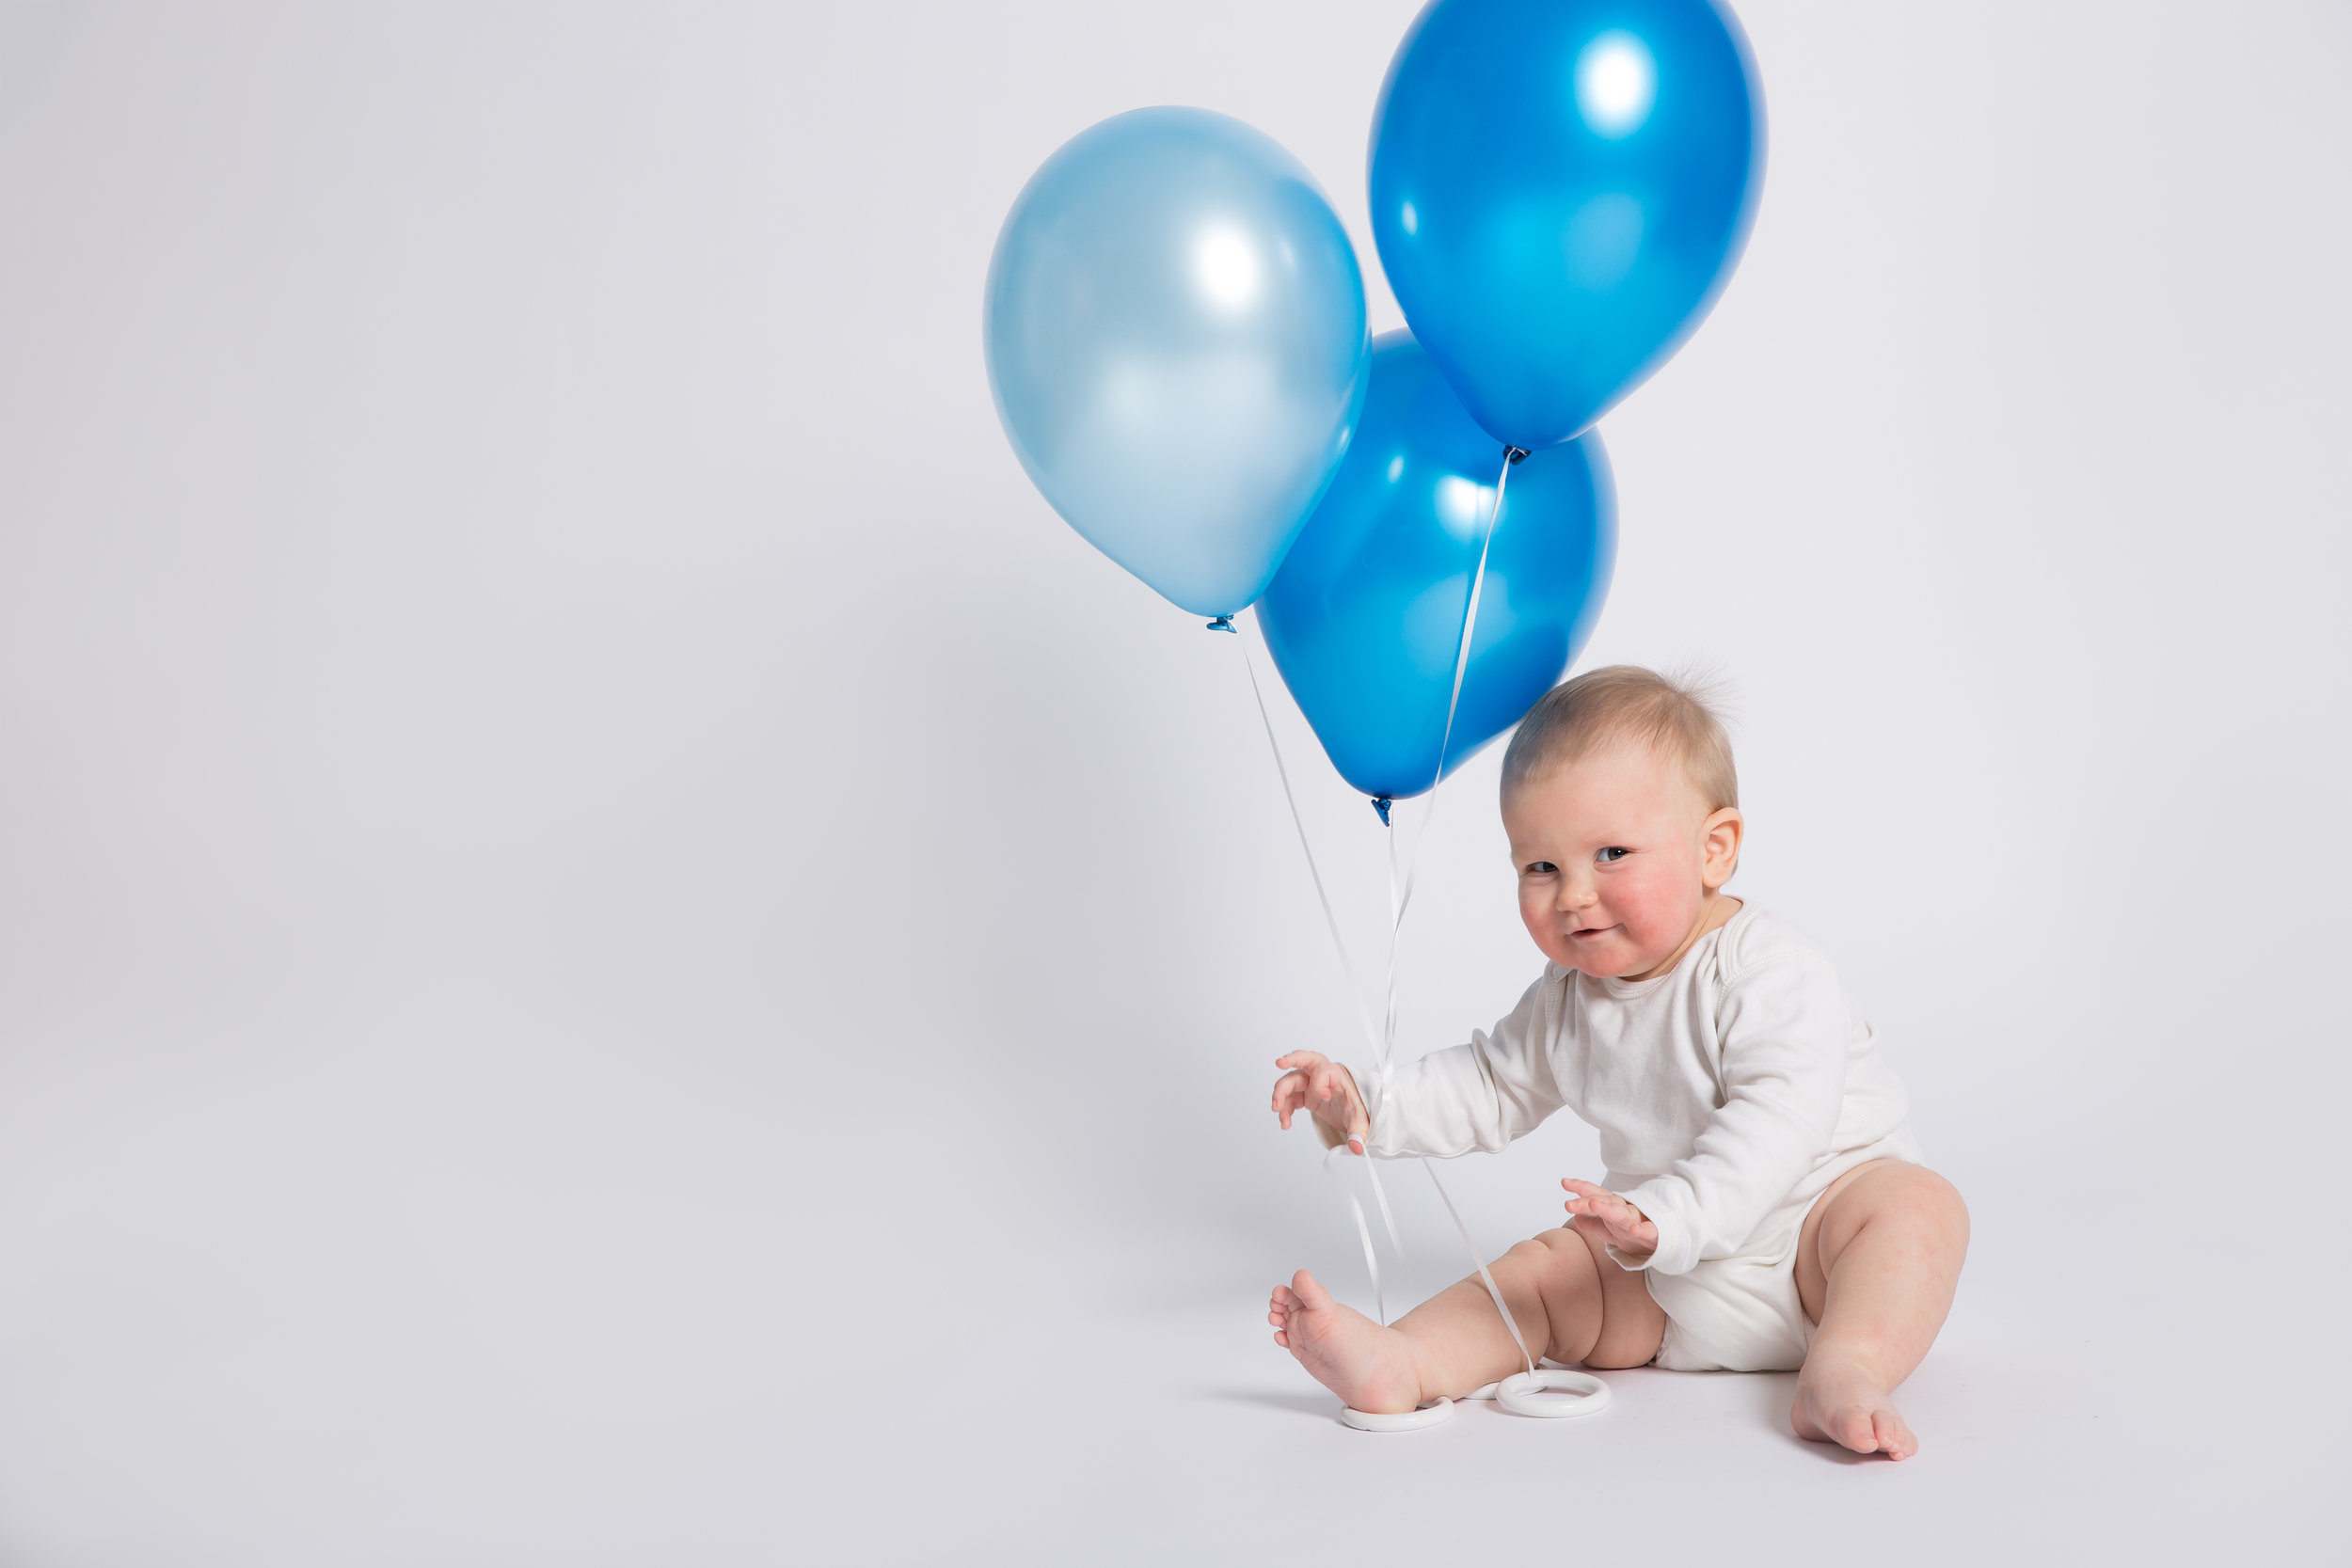 birthday-balloons-baby-photo-blue